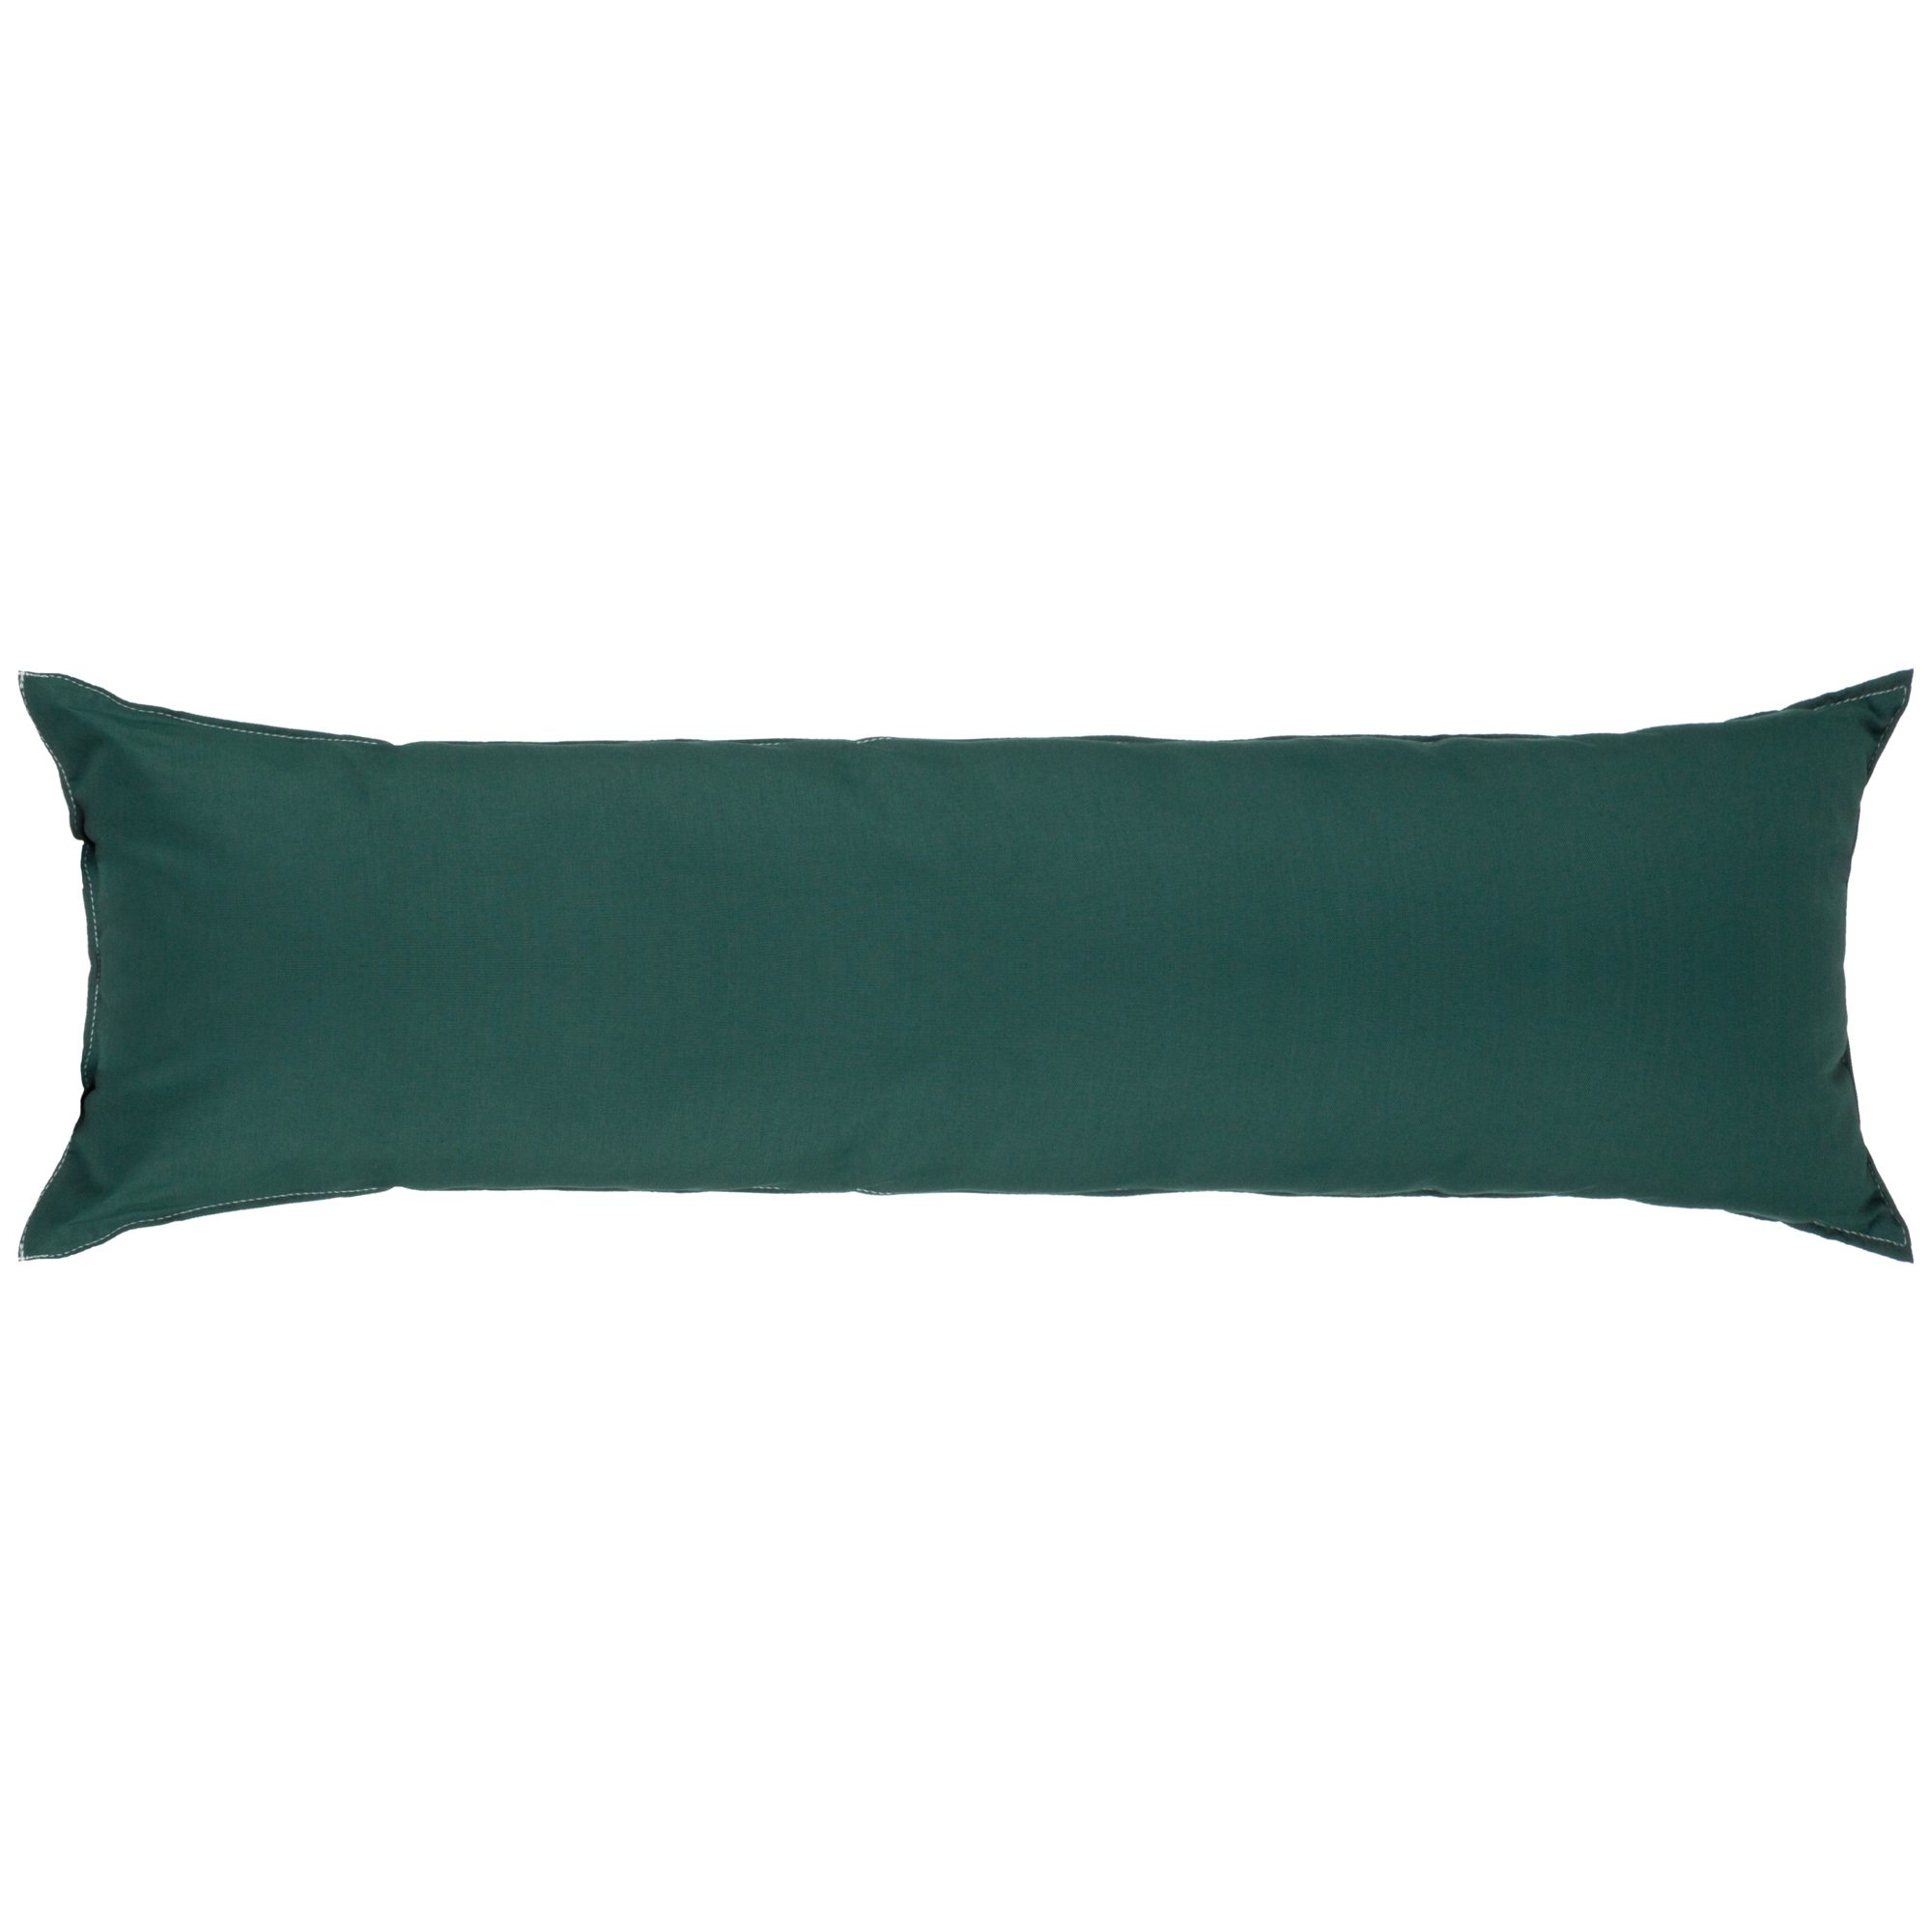 Hatteras Hammocks Sunbrella Long Hammock Pillow - Green by Hatteras Hammocks